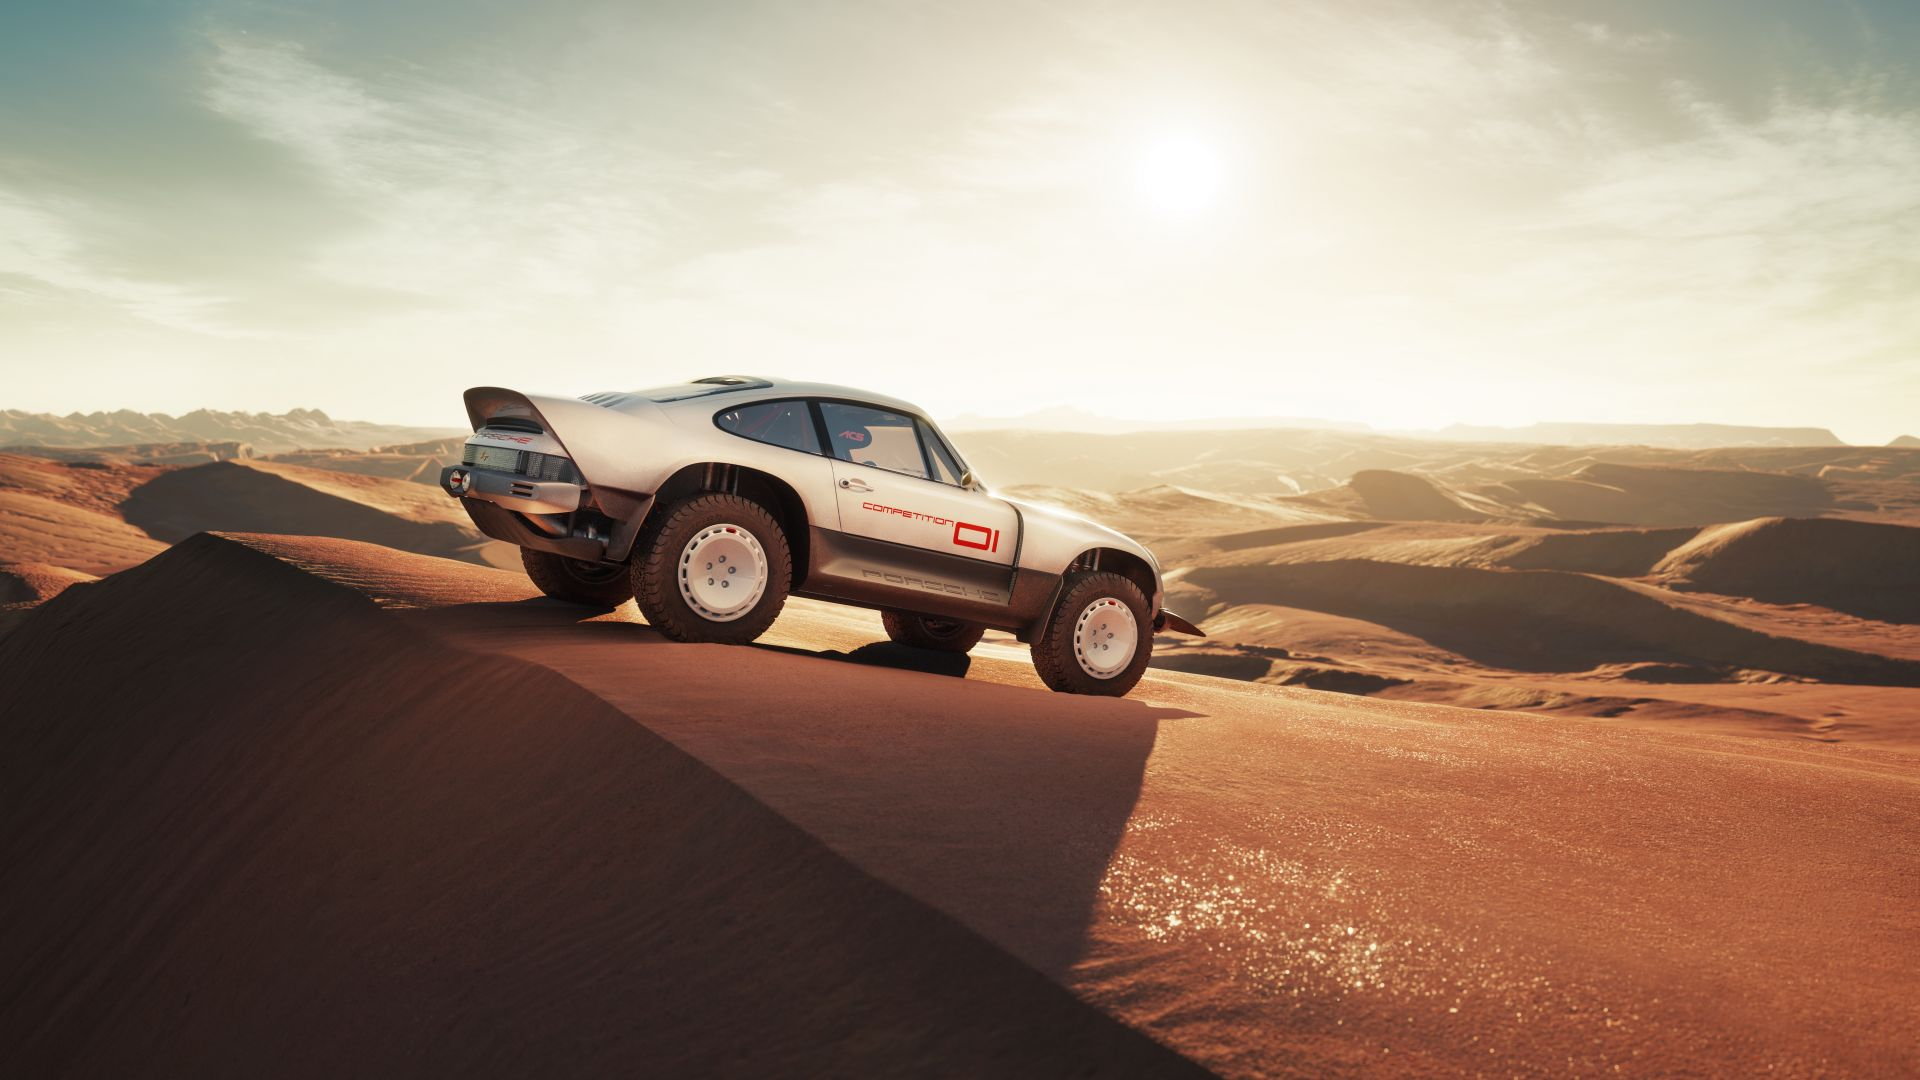 Cyberpunk Off-road Porsche by Singer